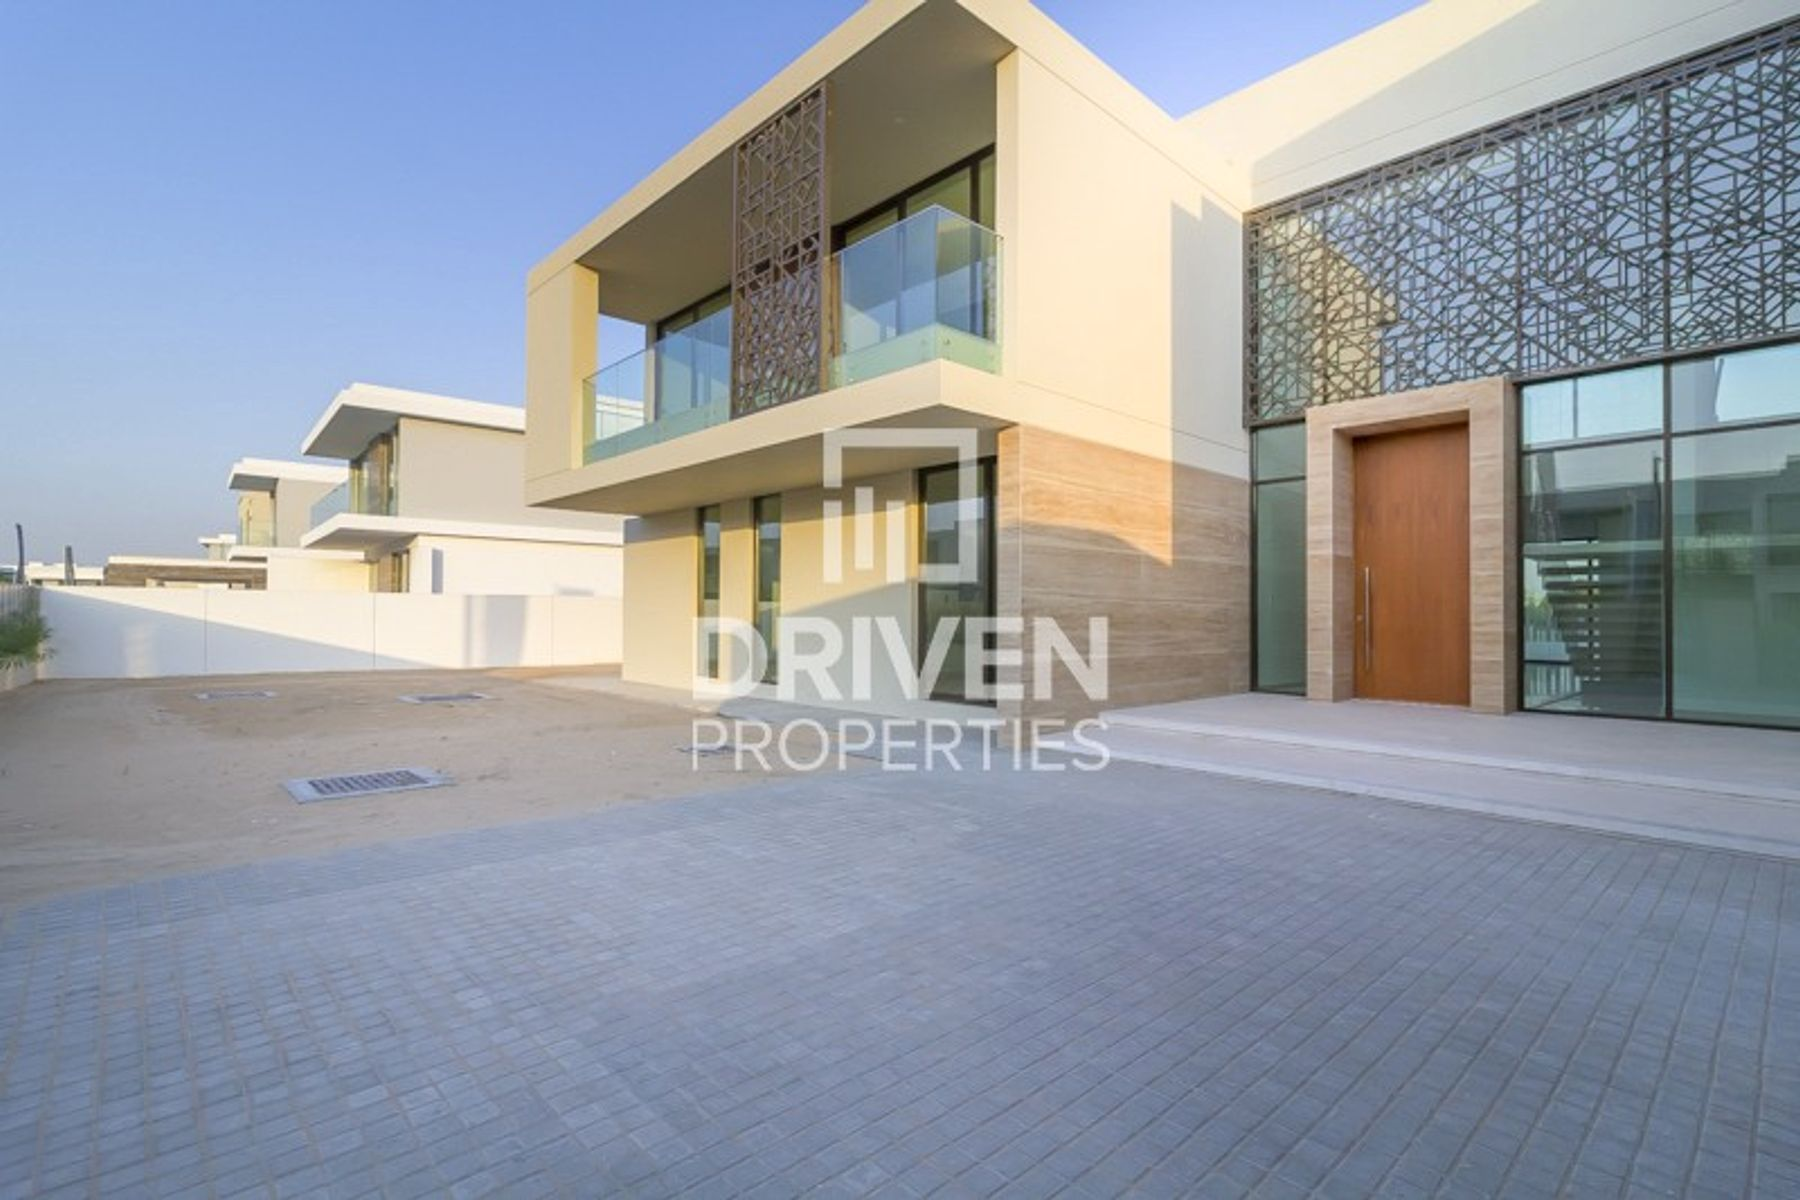 Vacant | 6 Bed Villa |  Golf Course View